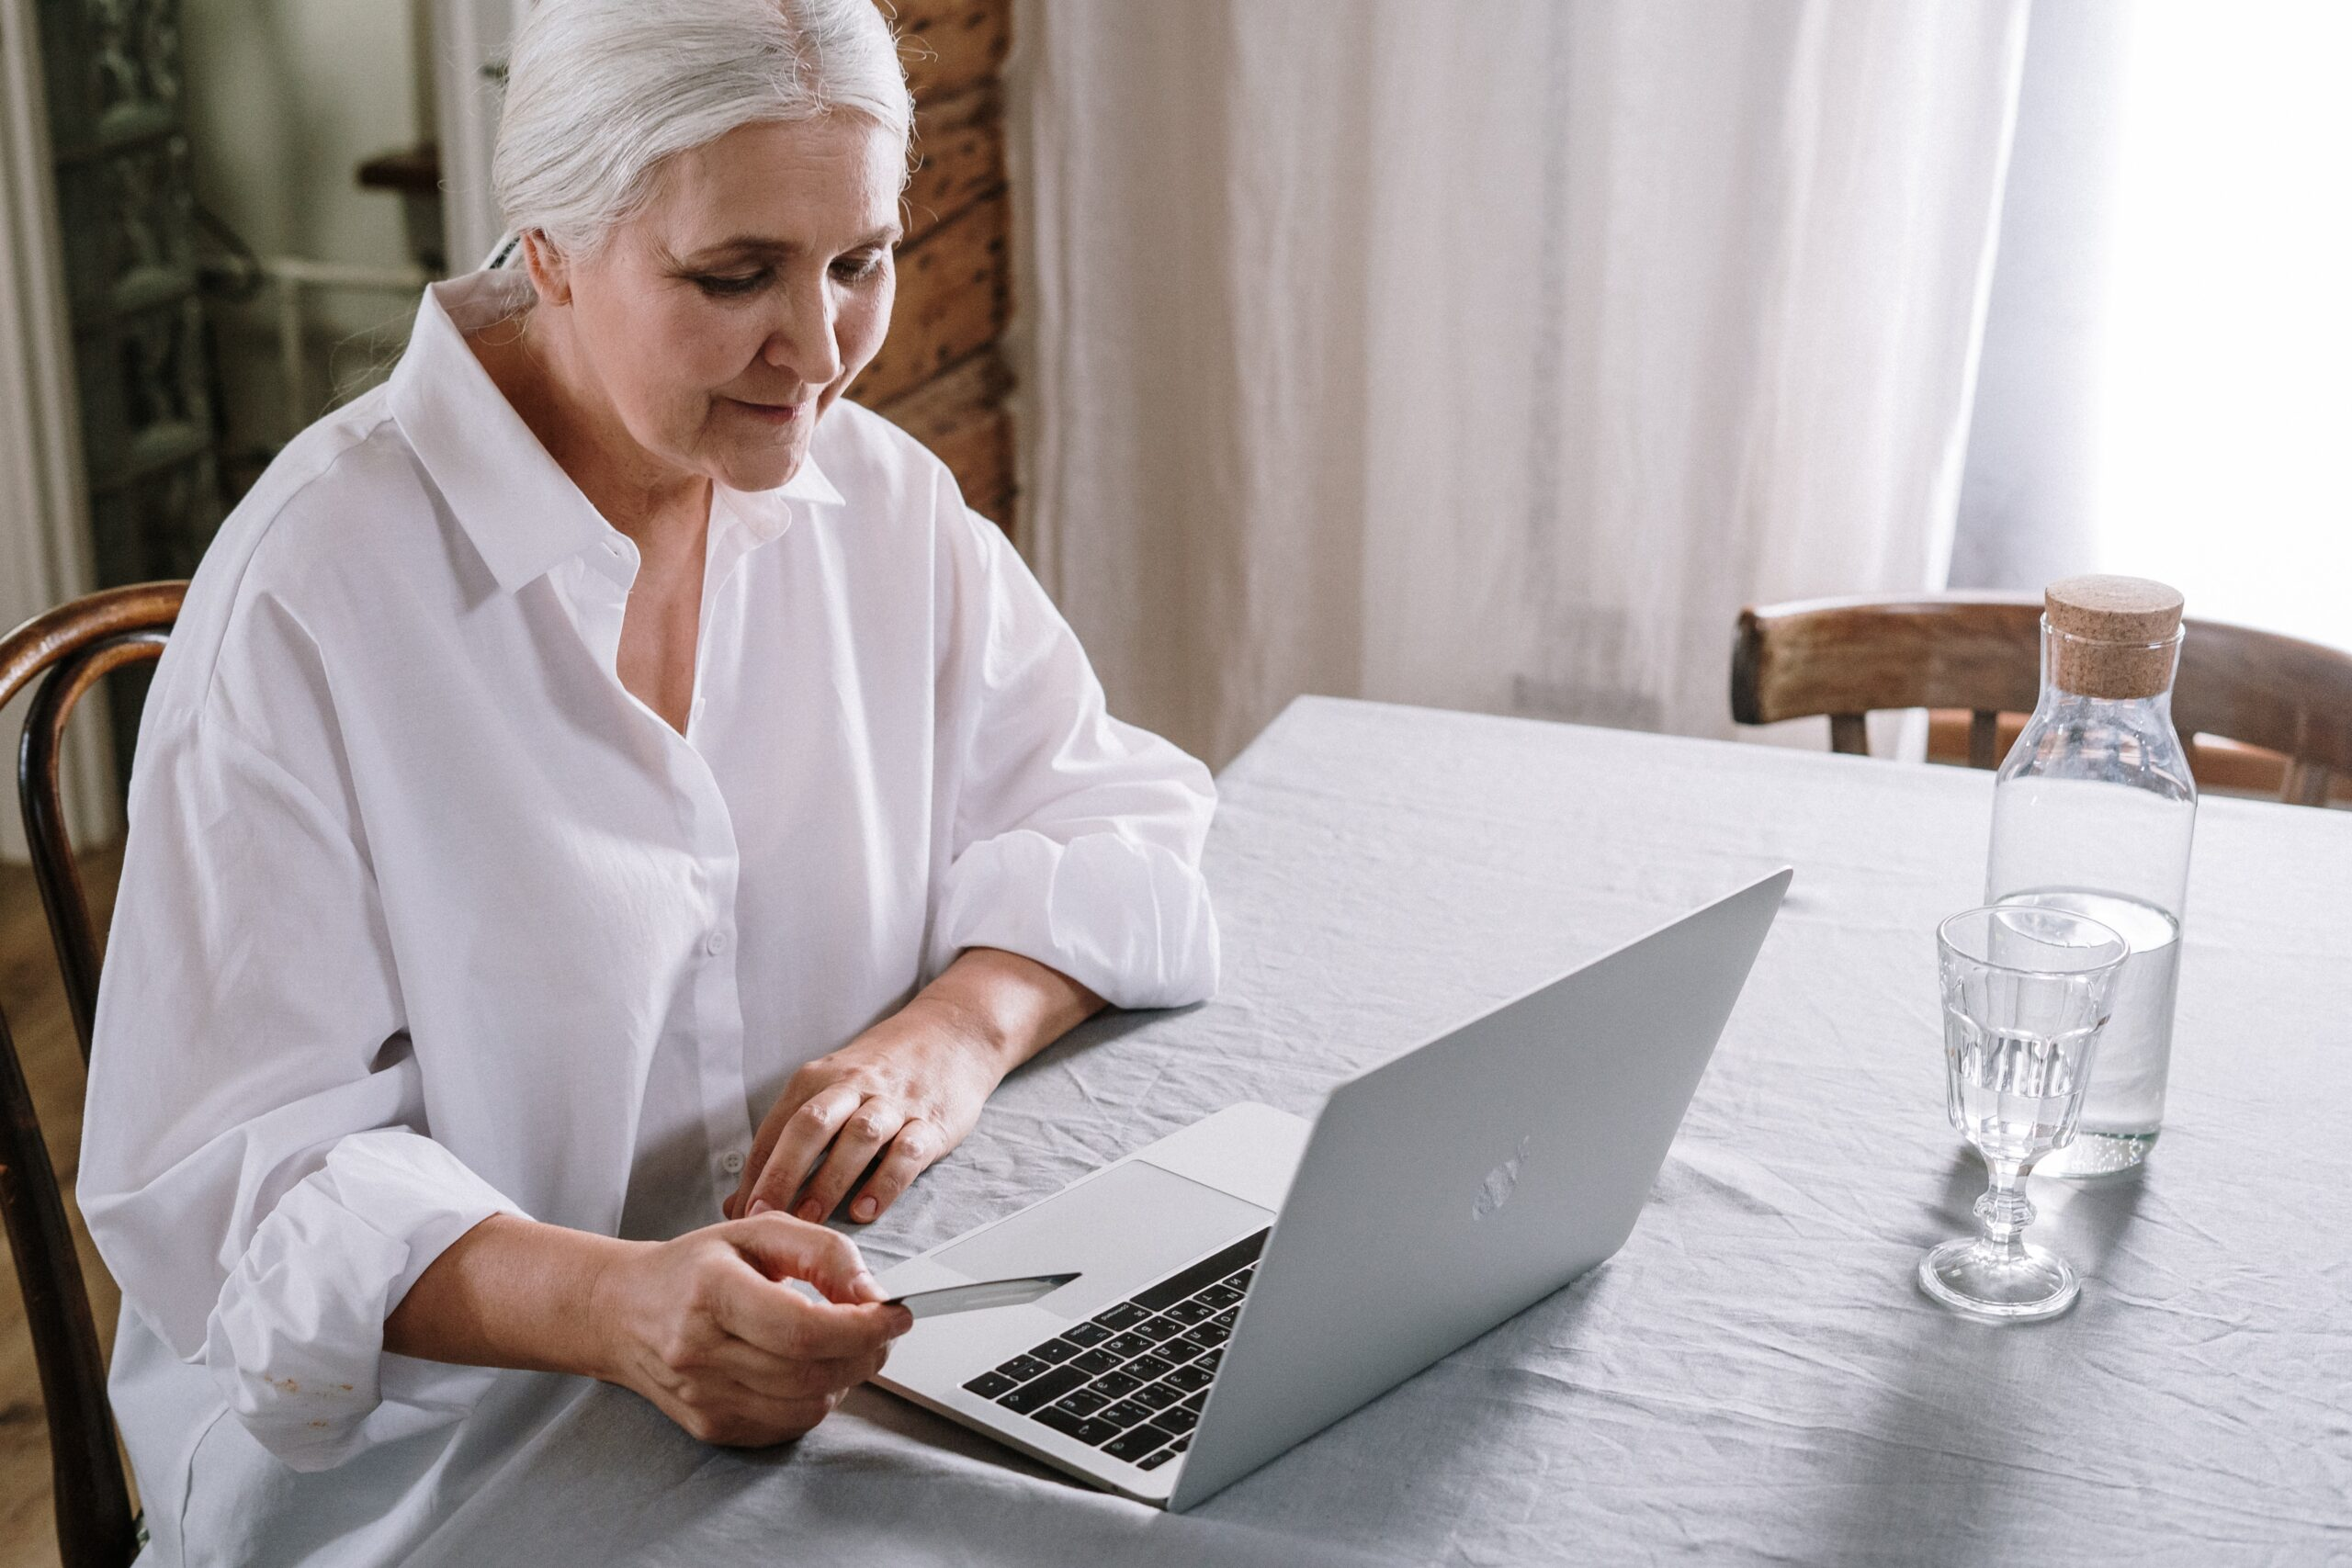 Old lady on her laptop